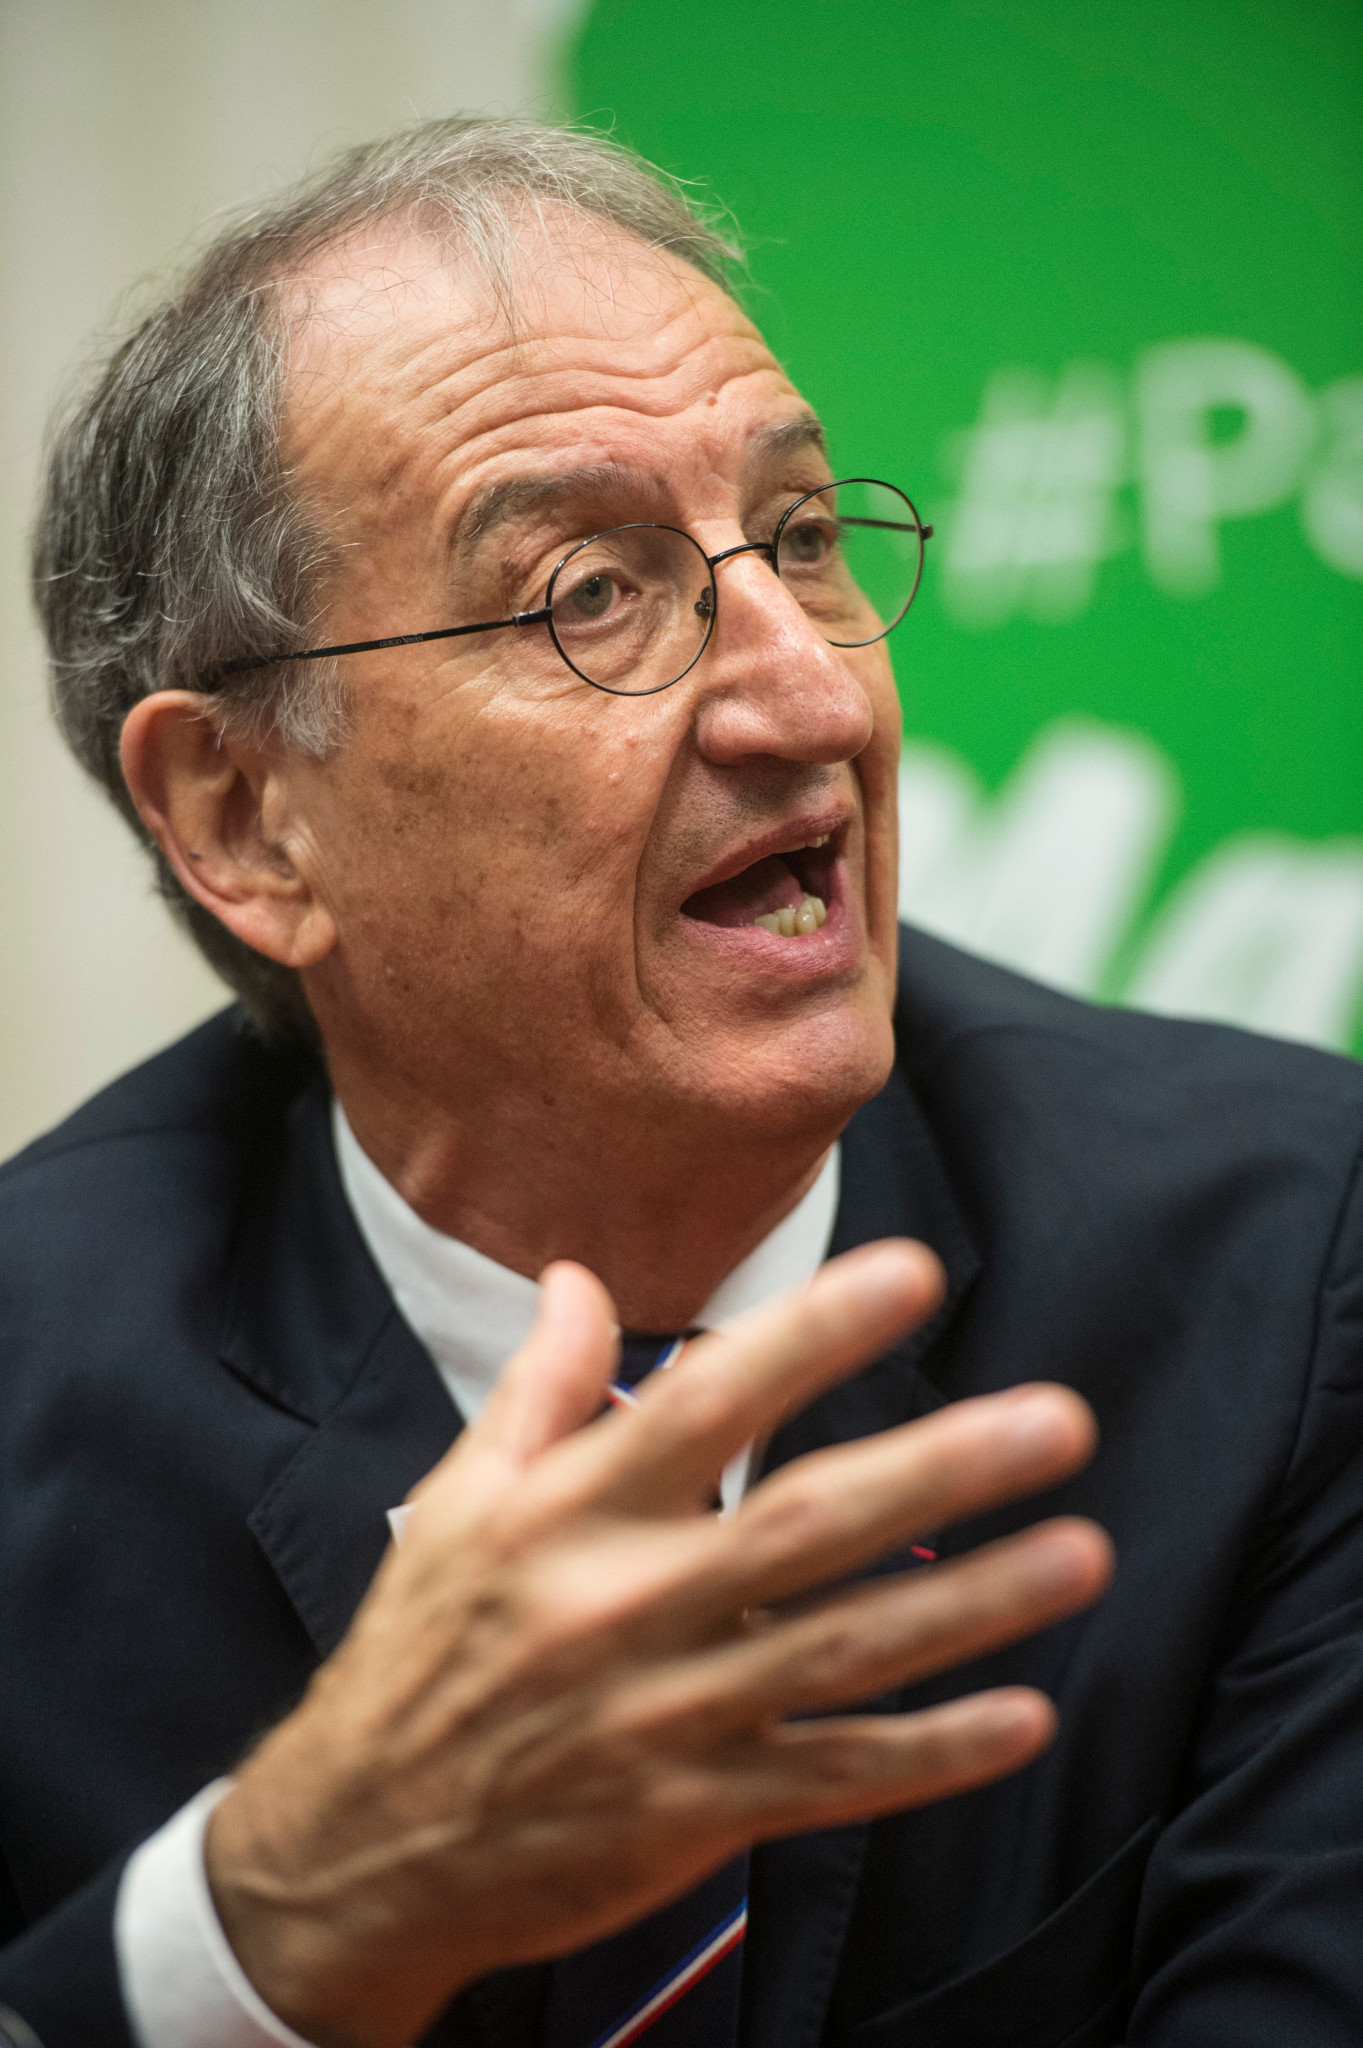 Denis Masseglia was re-elected President of the CNOSF in May ©Getty Images